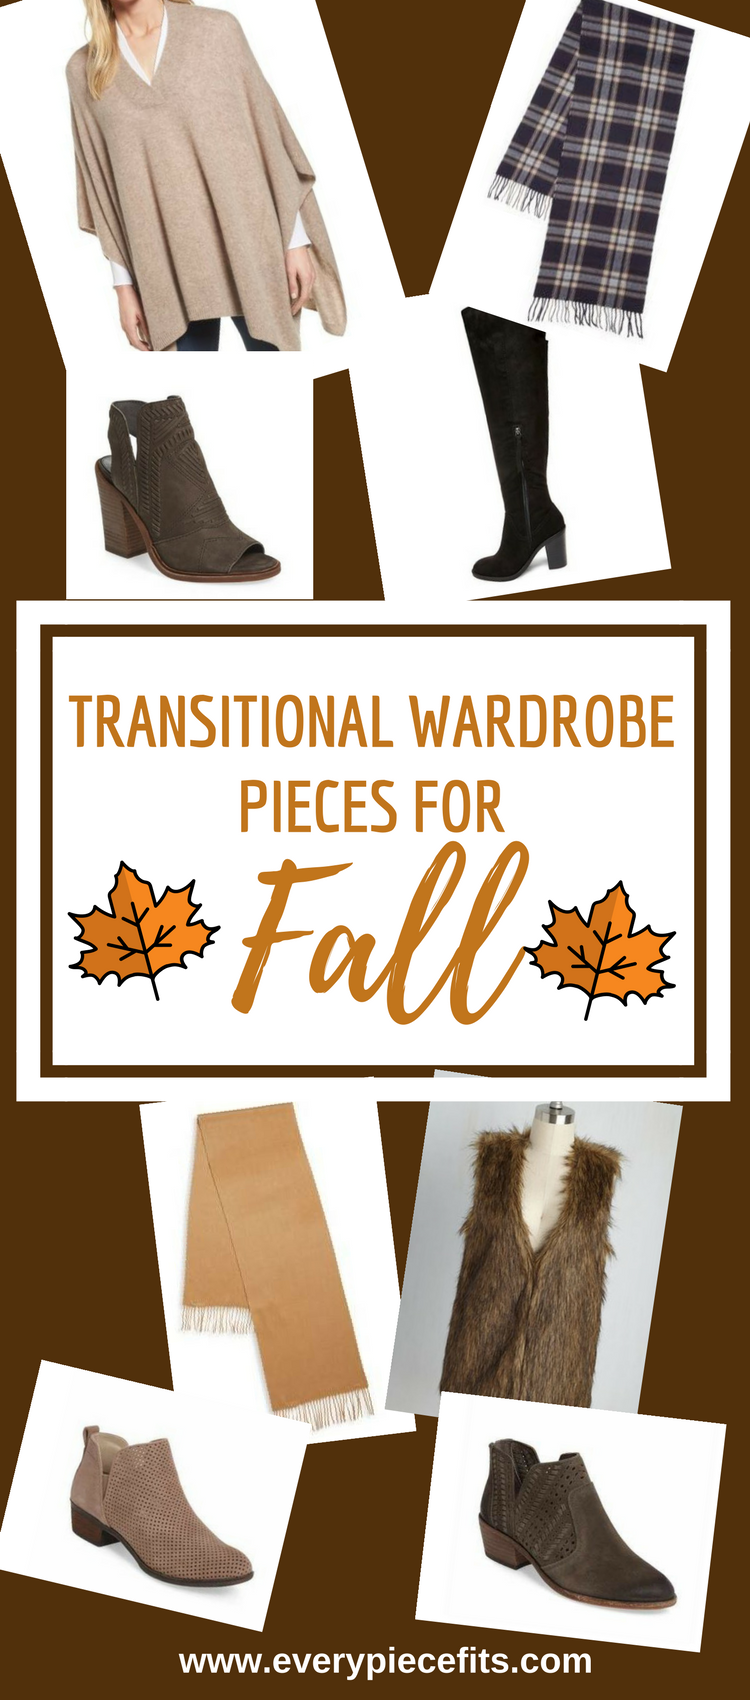 Pinterest Fall Transition Pieces for Wardrobe.png